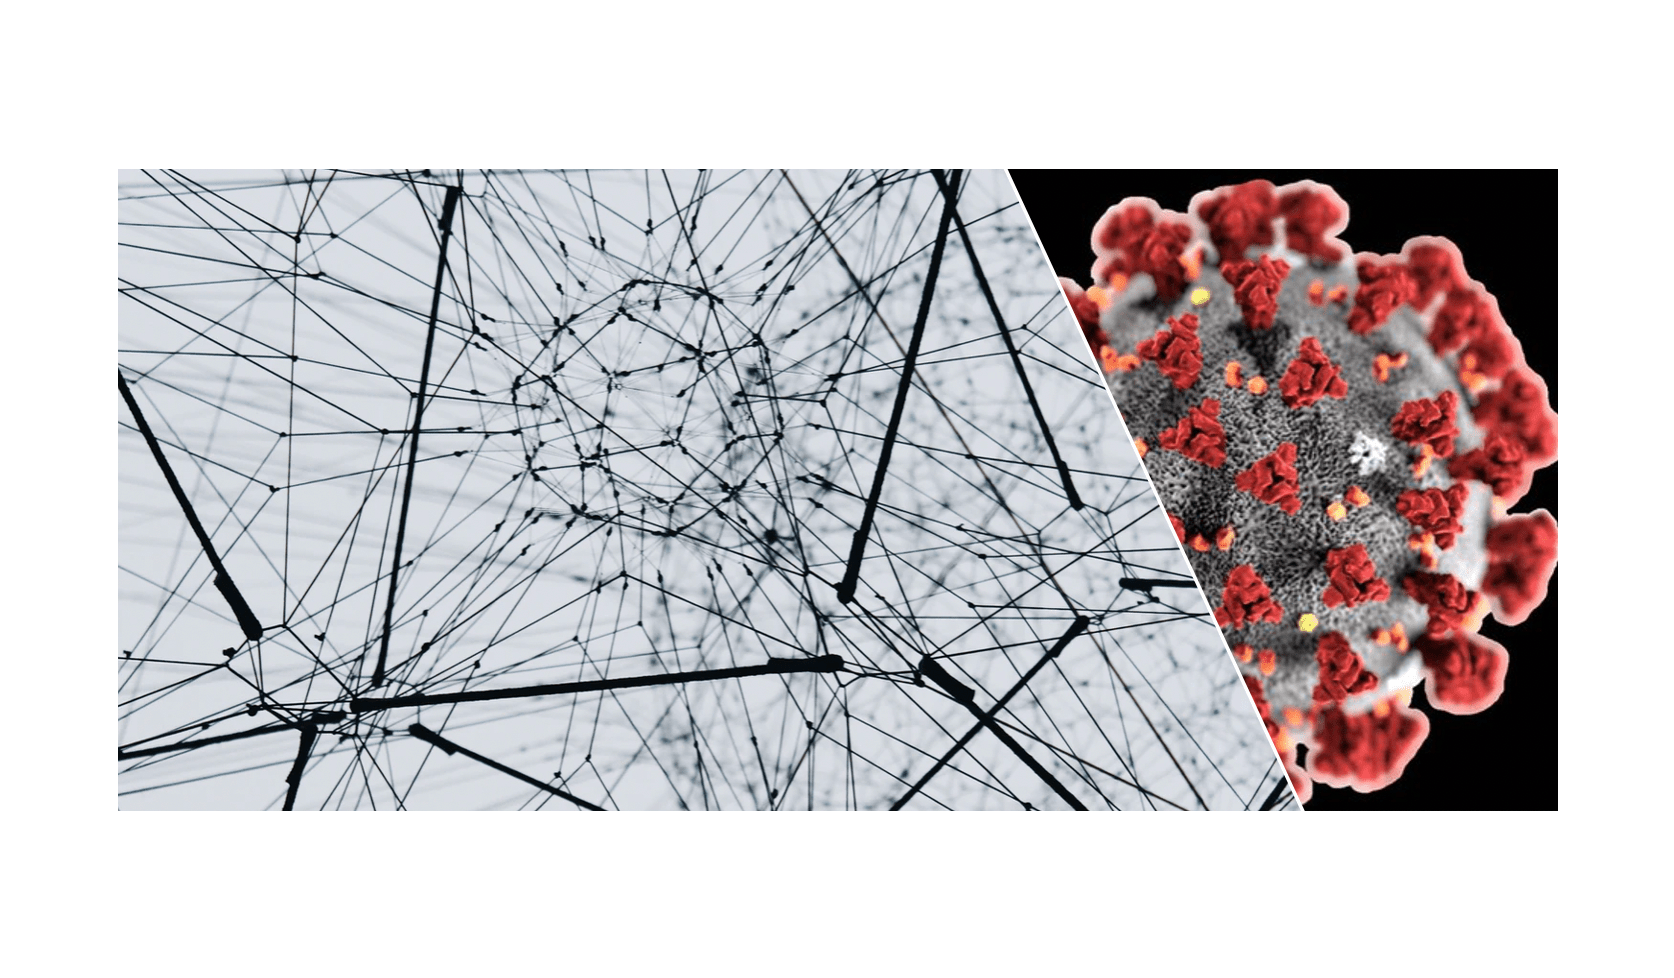 Le backtracking, la blockchain coronavirus 2020 Quantmetry